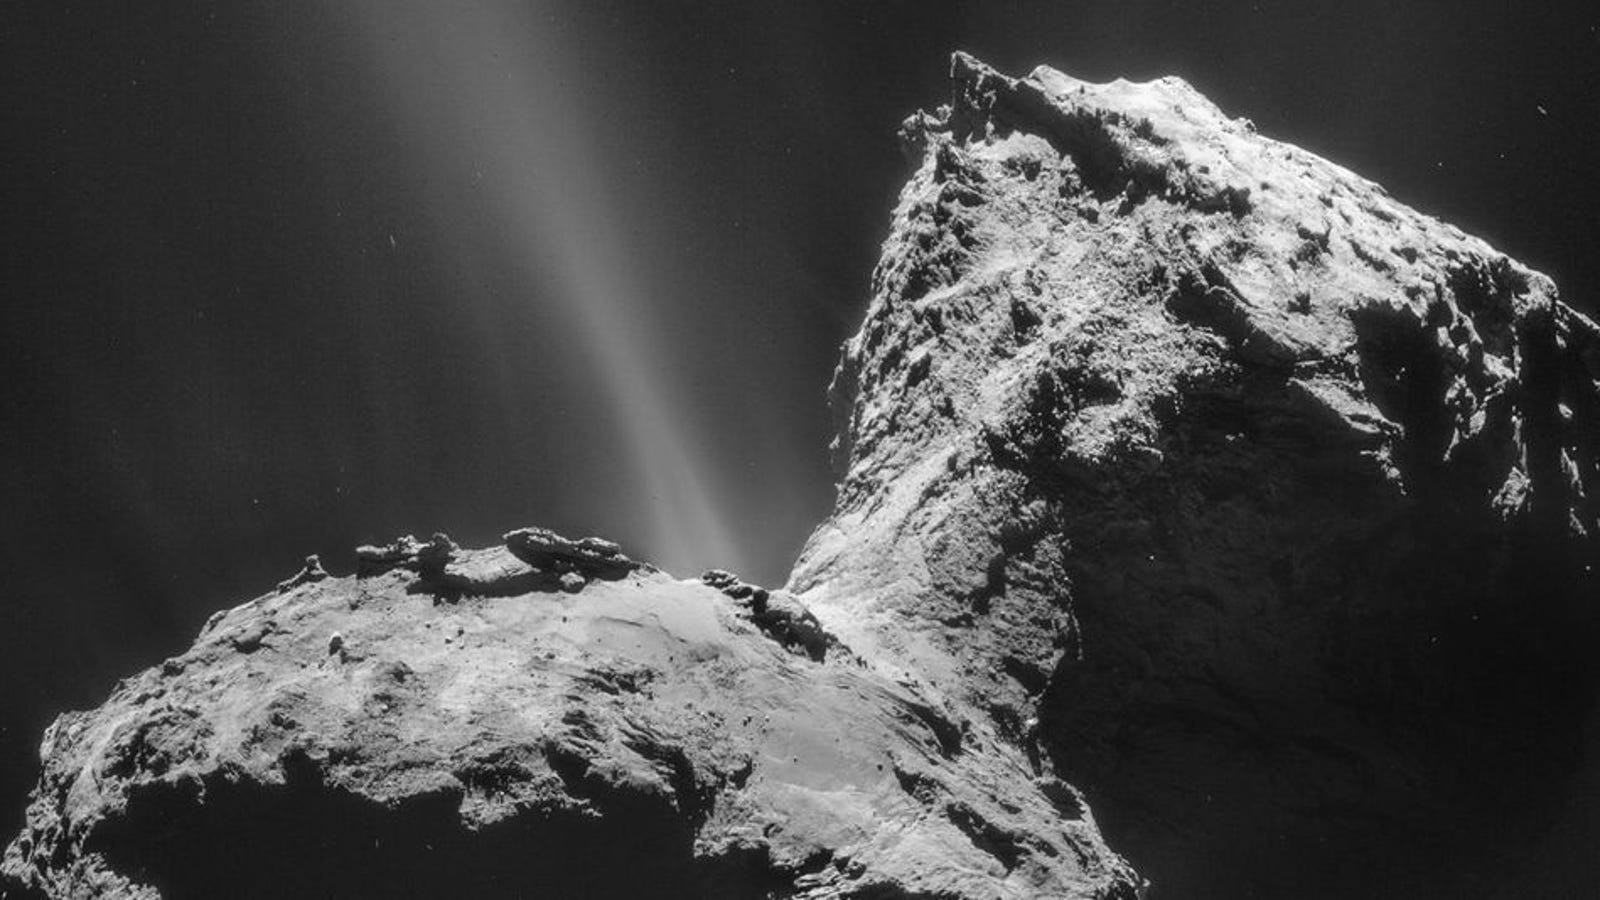 The Rosetta Image Archive Is Now Complete and Freely Available, so You Can See a Comet Like Never Before